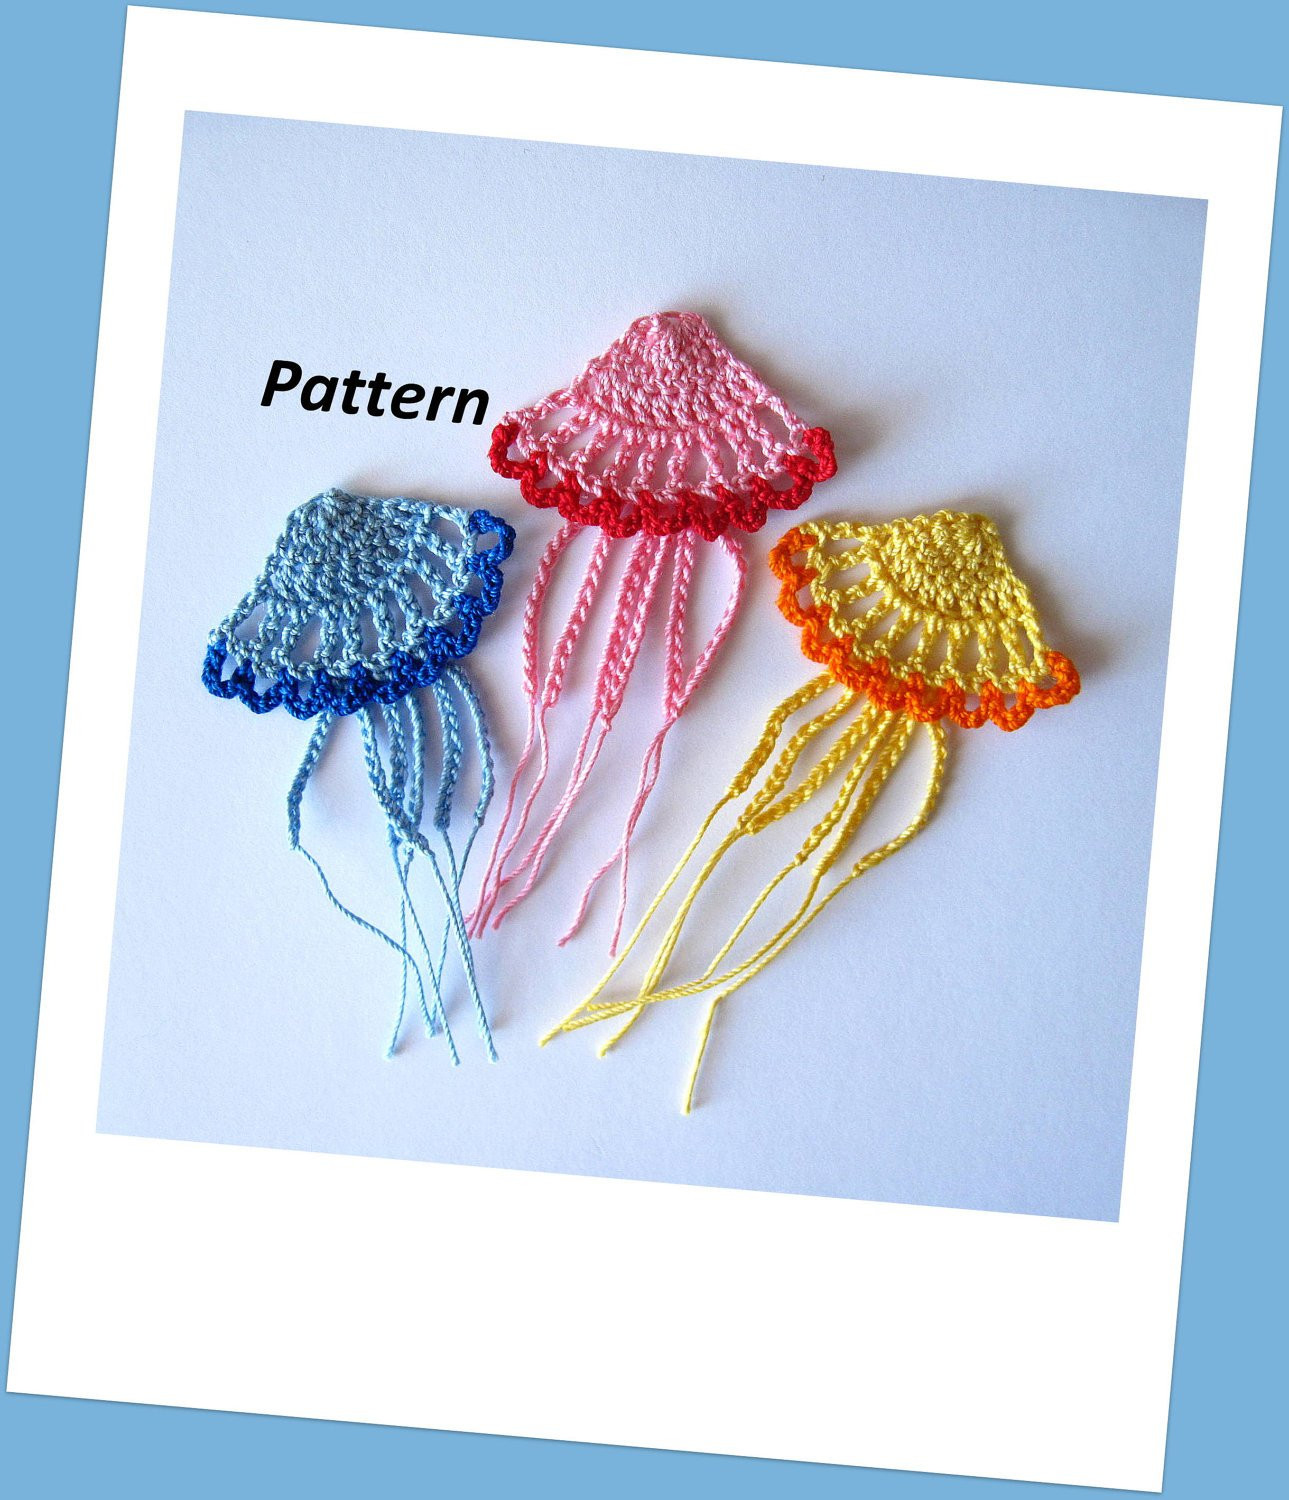 Crochet Applique New Crochet Jellyfish Pattern Applique by Goldenlucycrafts On Etsy Of Marvelous 47 Images Crochet Applique